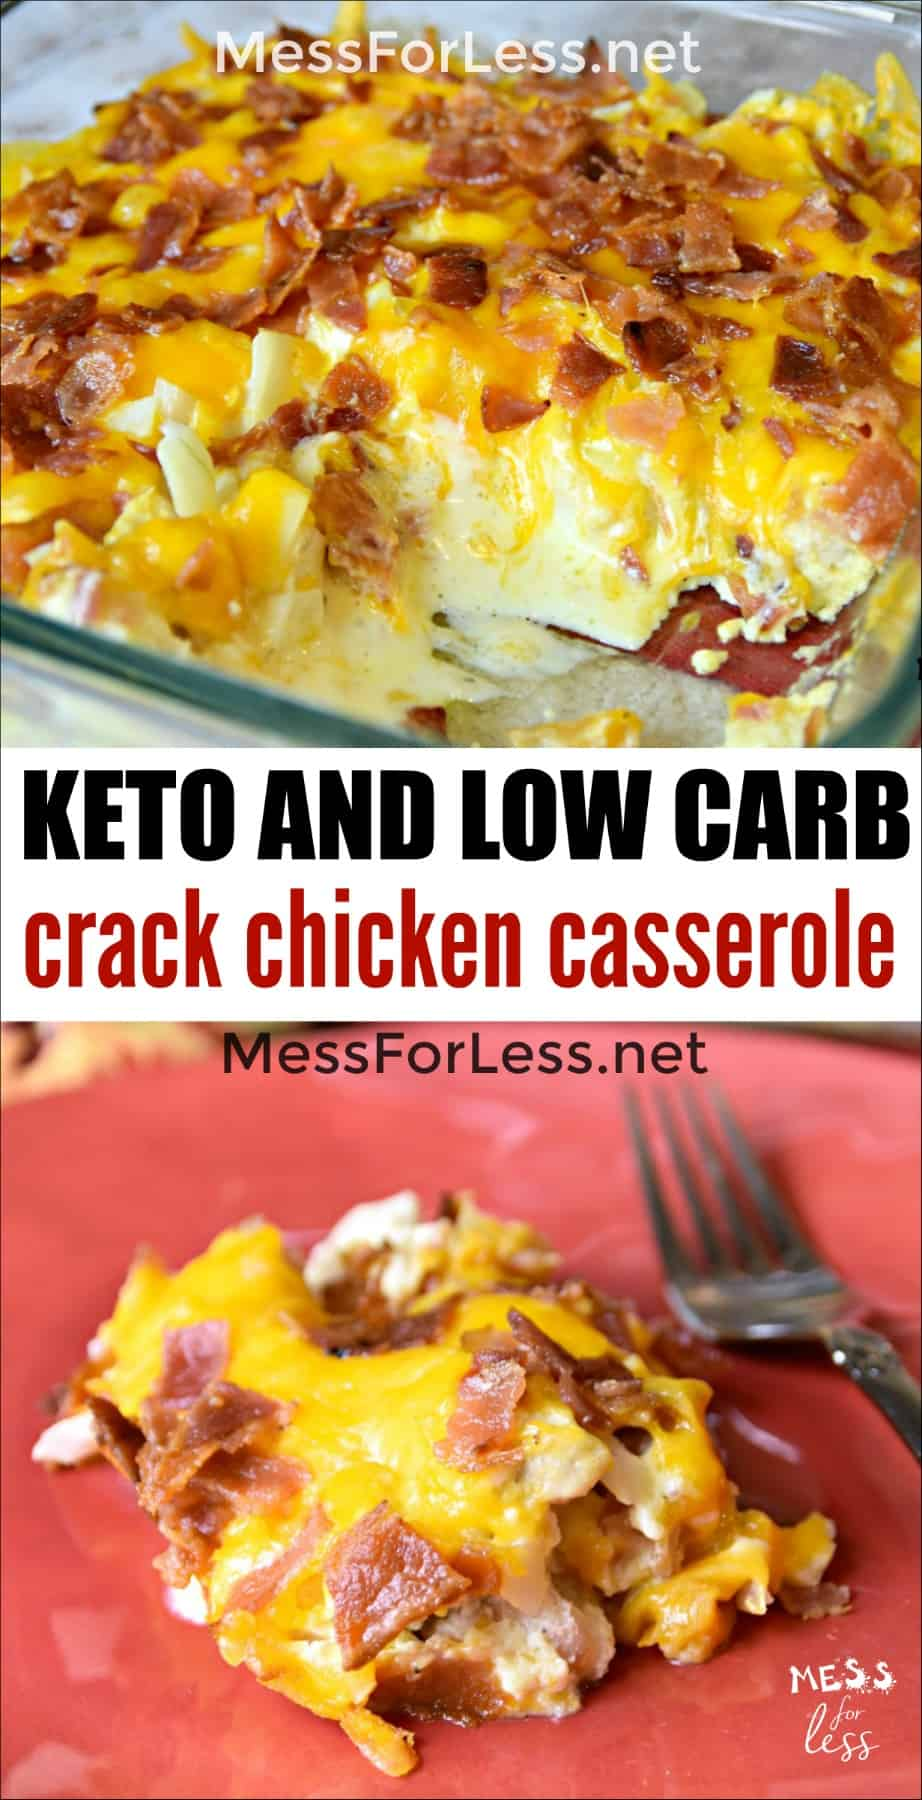 This Keto Crack Chicken Casserole is addictive! Cheese and bacon combine with chicken in this creamy low carb dish. #keto #lowcarb #crackchicken #ketocrackchicken